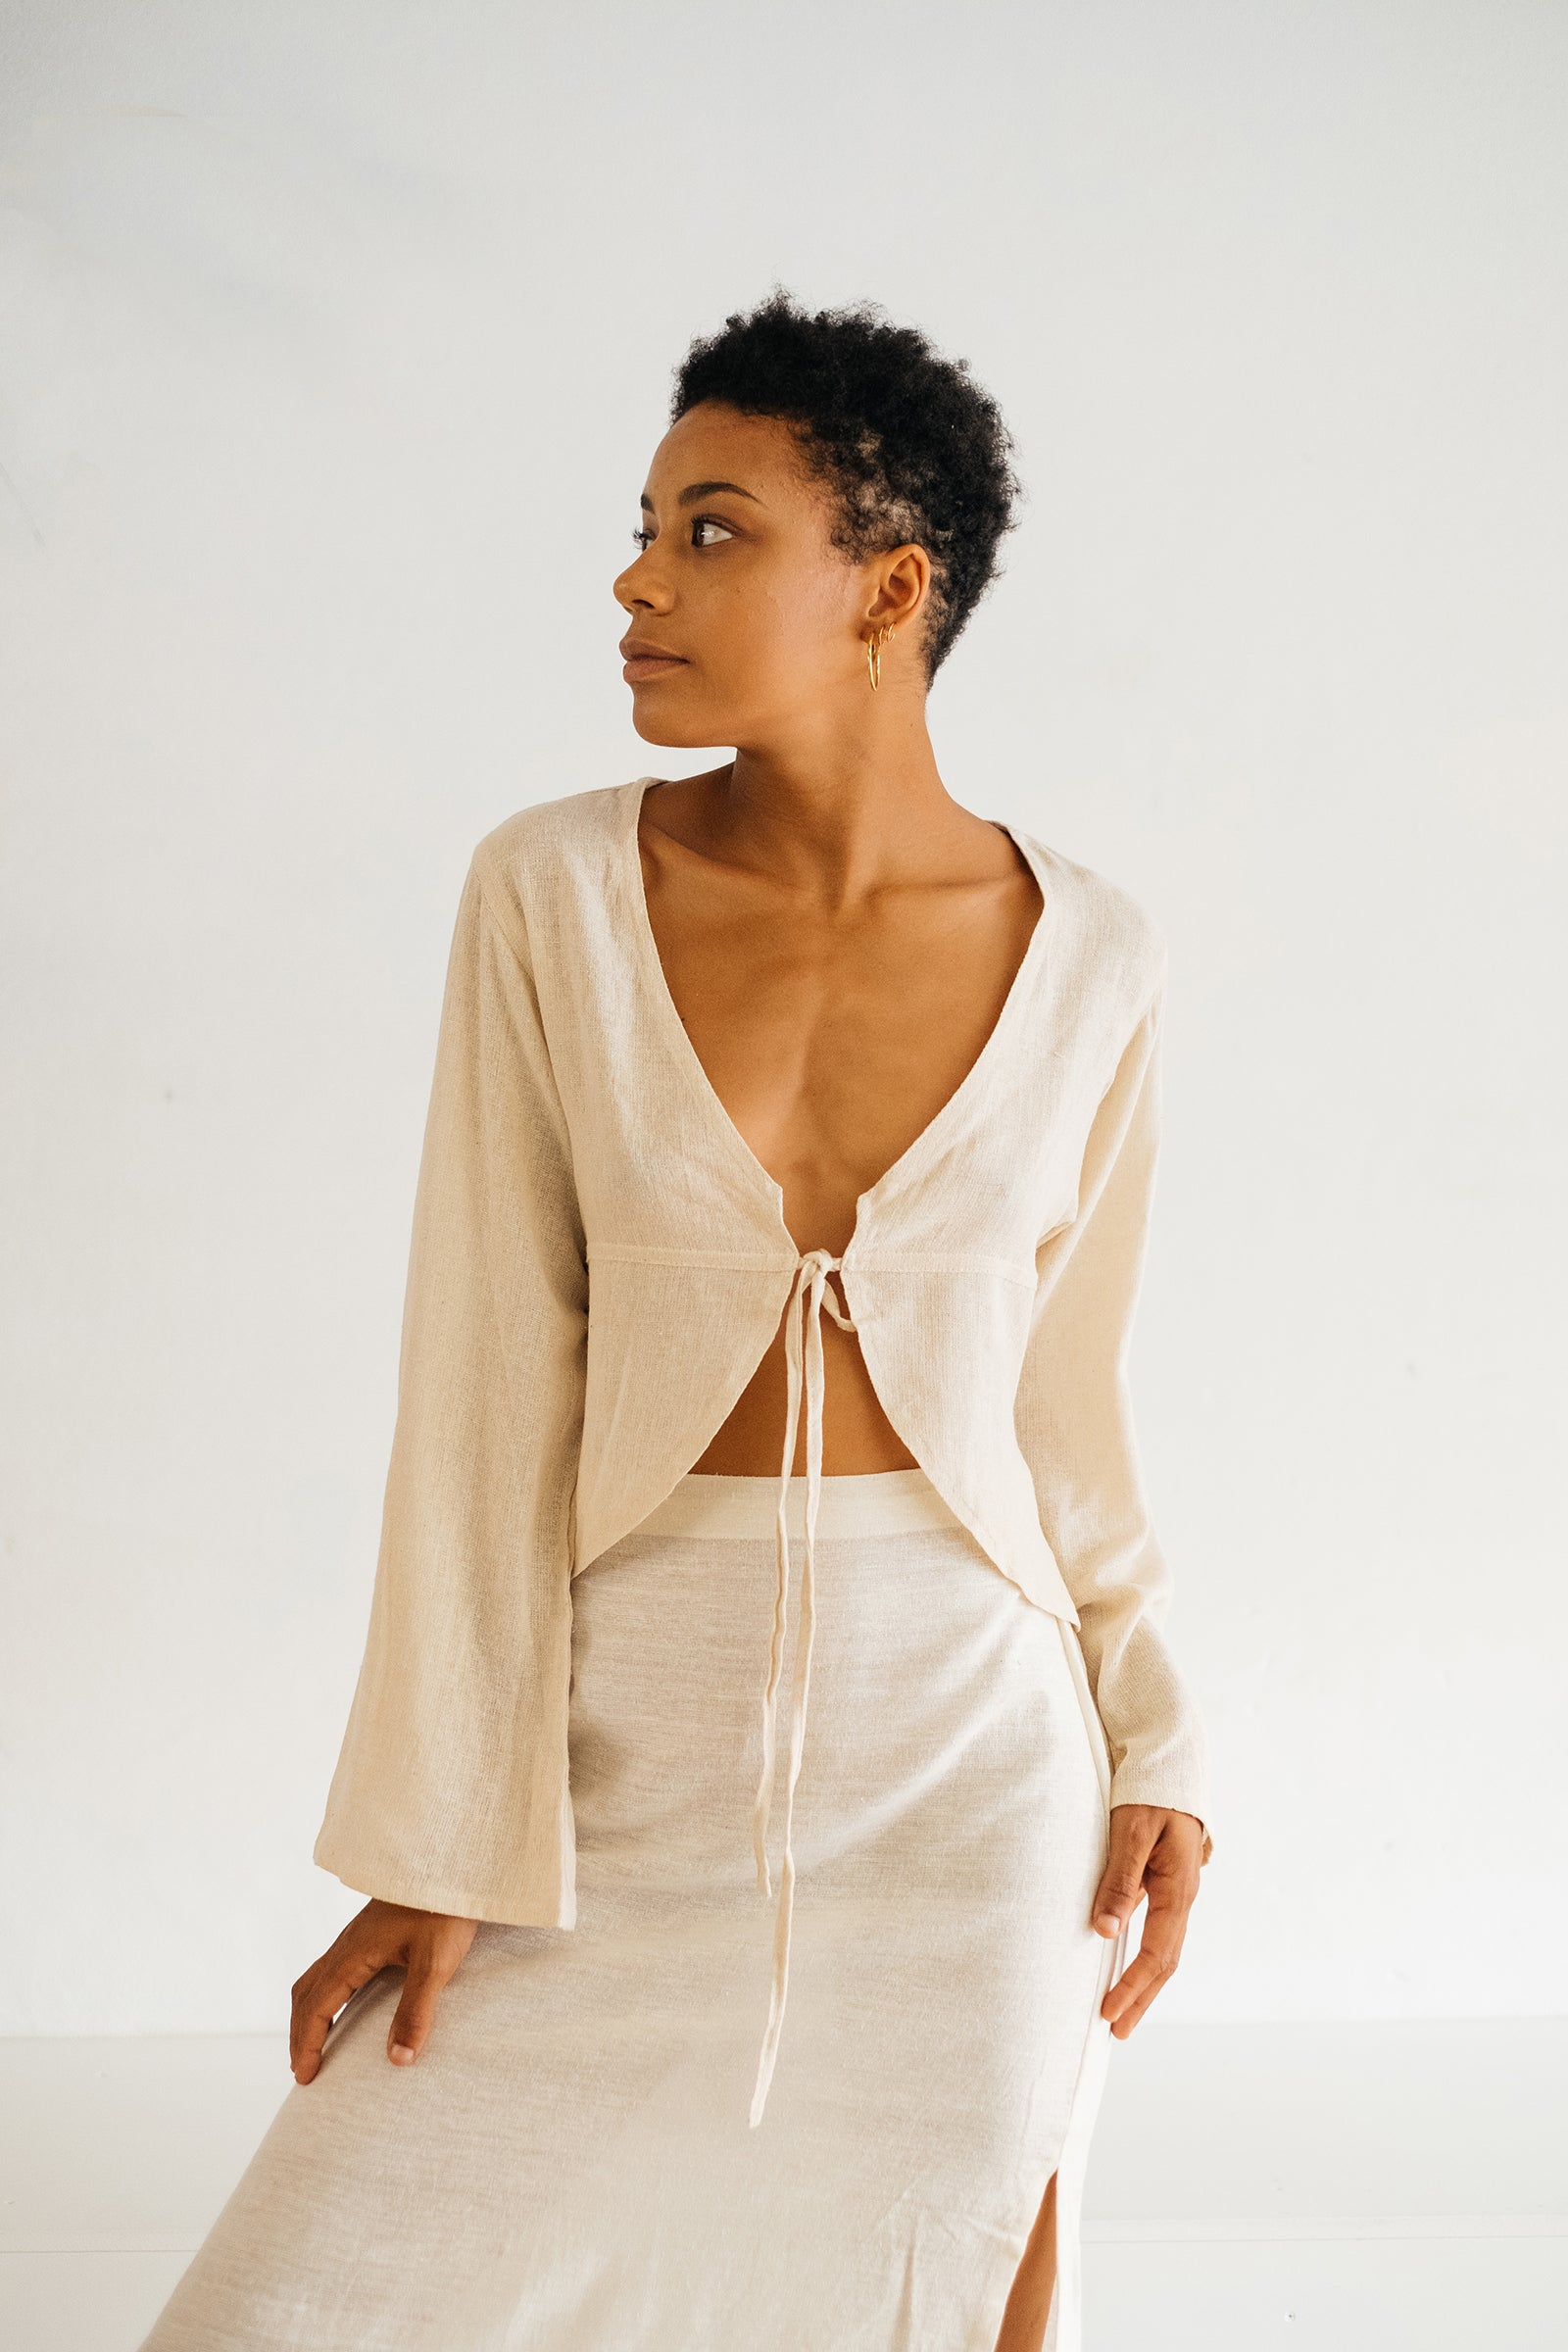 The Silk co. | Raven Crop | Sustainable Raw Silk Clothing - The Silk Co Byron Bay